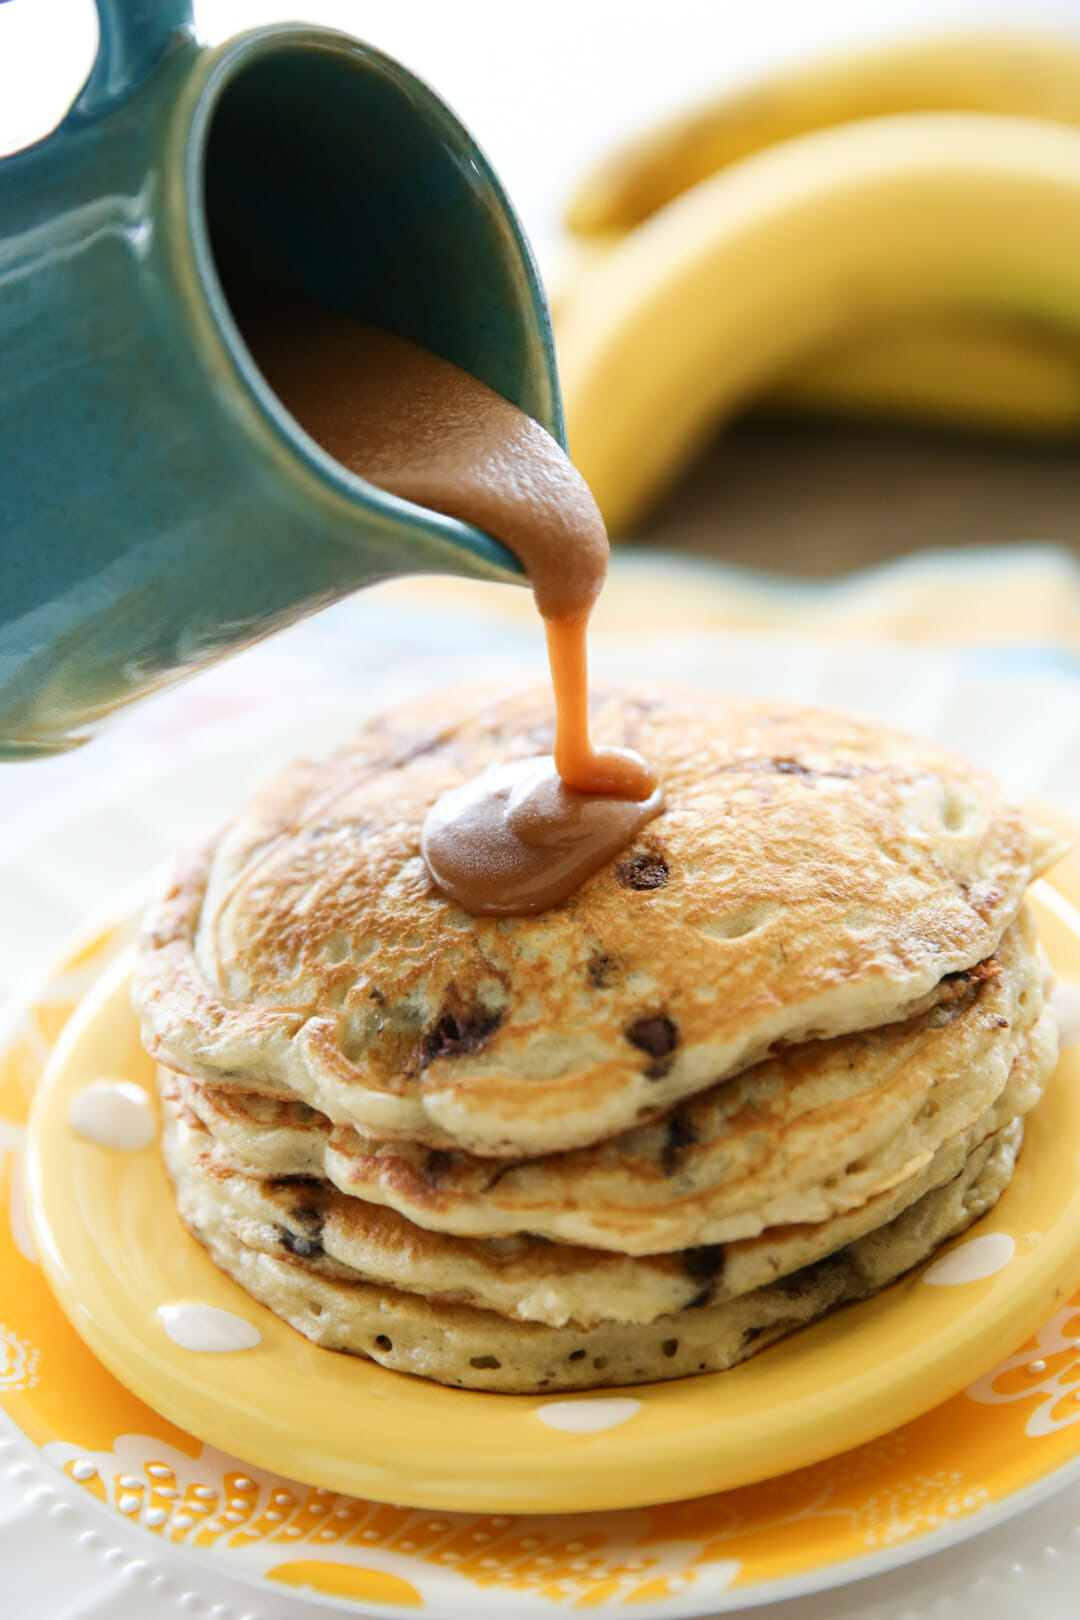 Syrup on maple pancakes